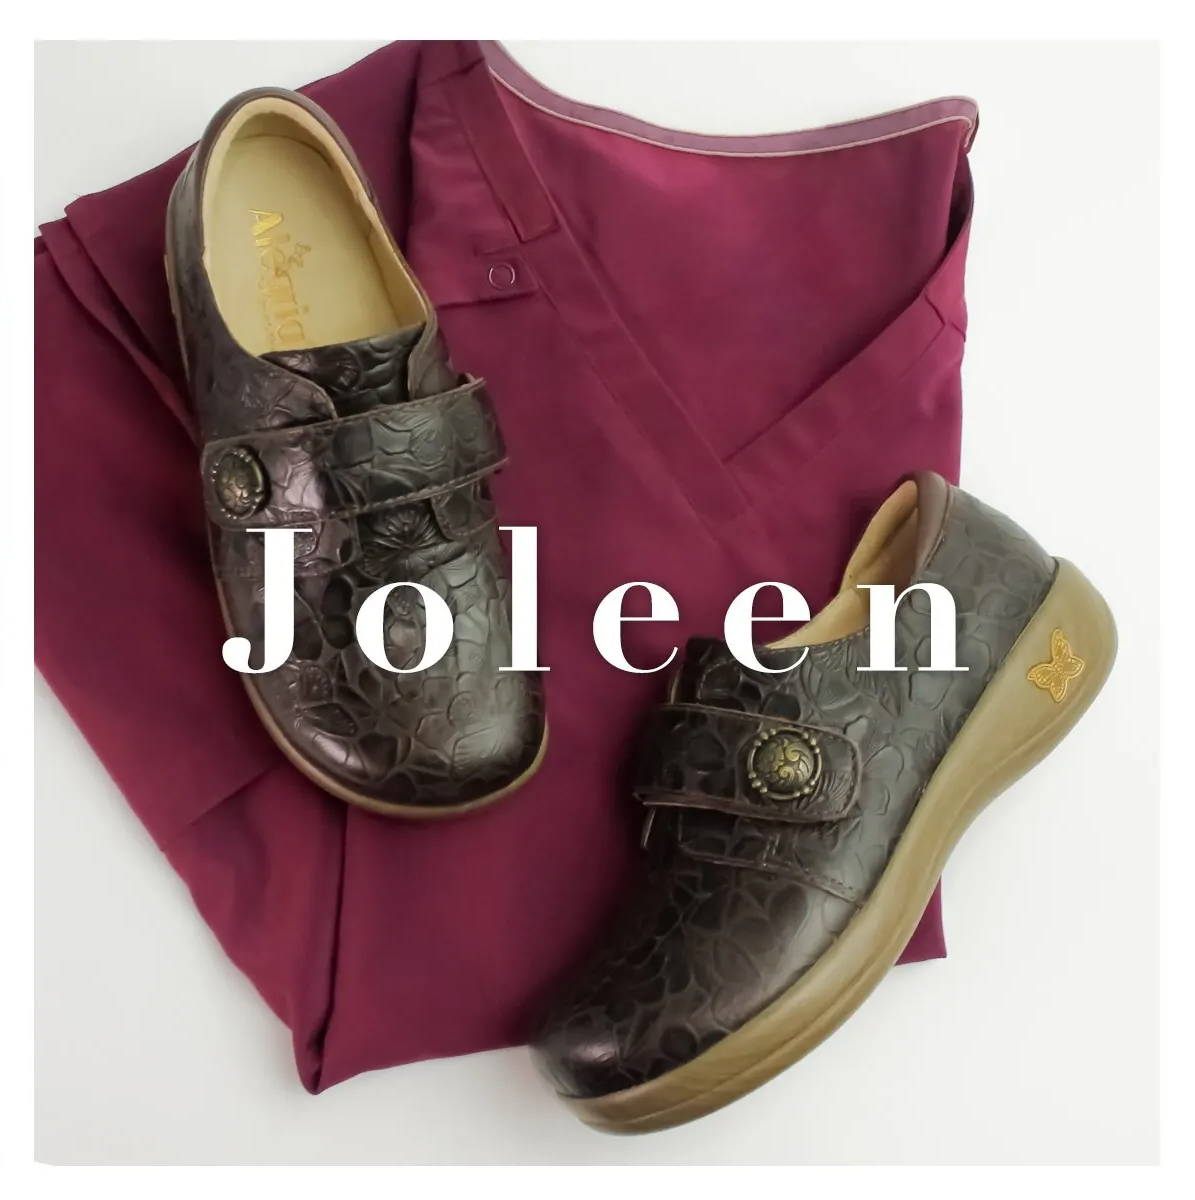 Alegria Joleen profession shoe collection - in Molasses Tooled